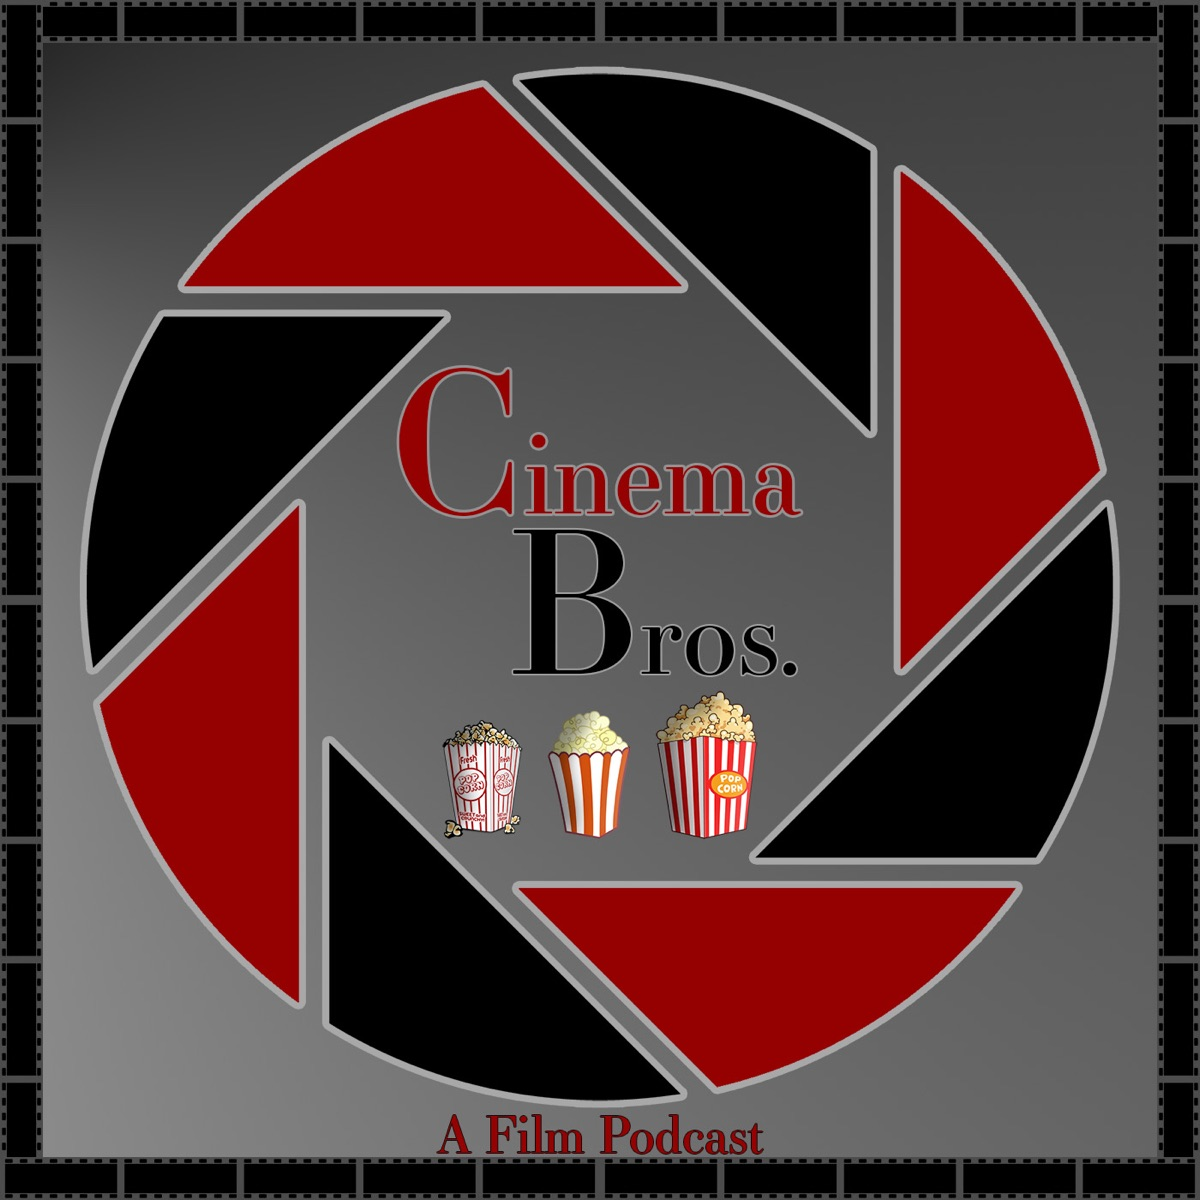 The Cinema Bros Podcast